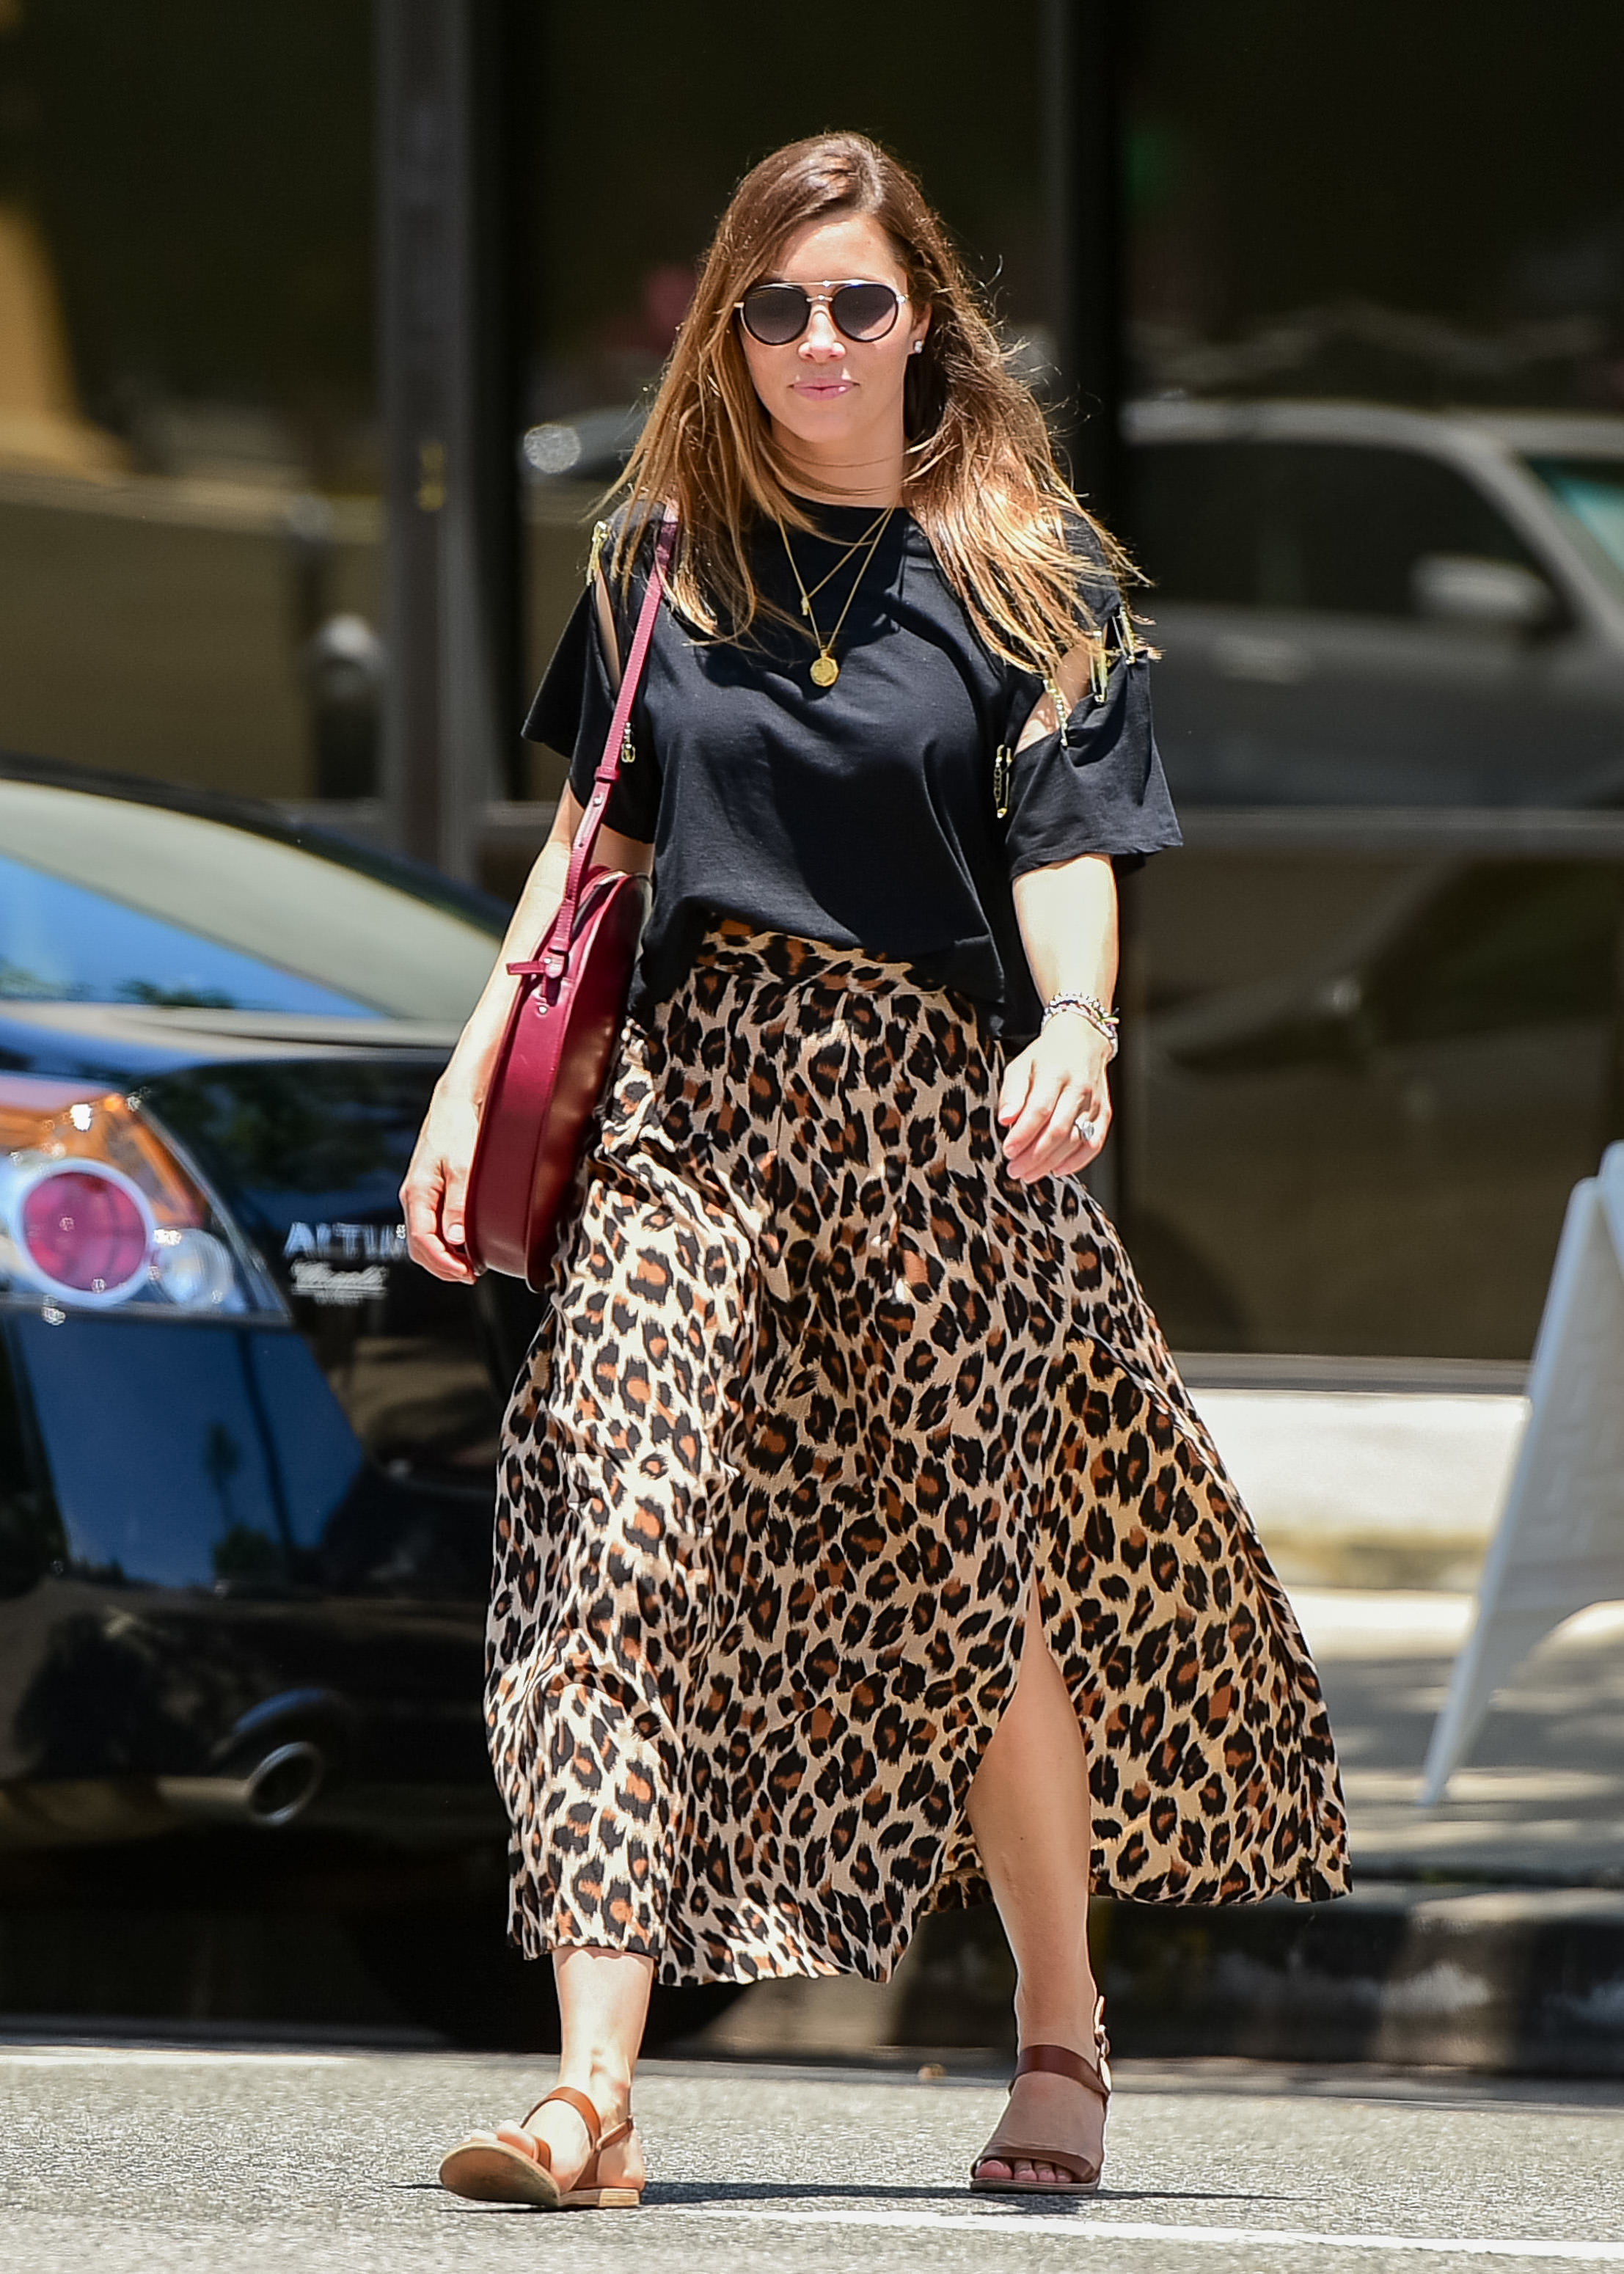 Jessica Biel is spotted out and about in Los Angeles on June 10, 2019.